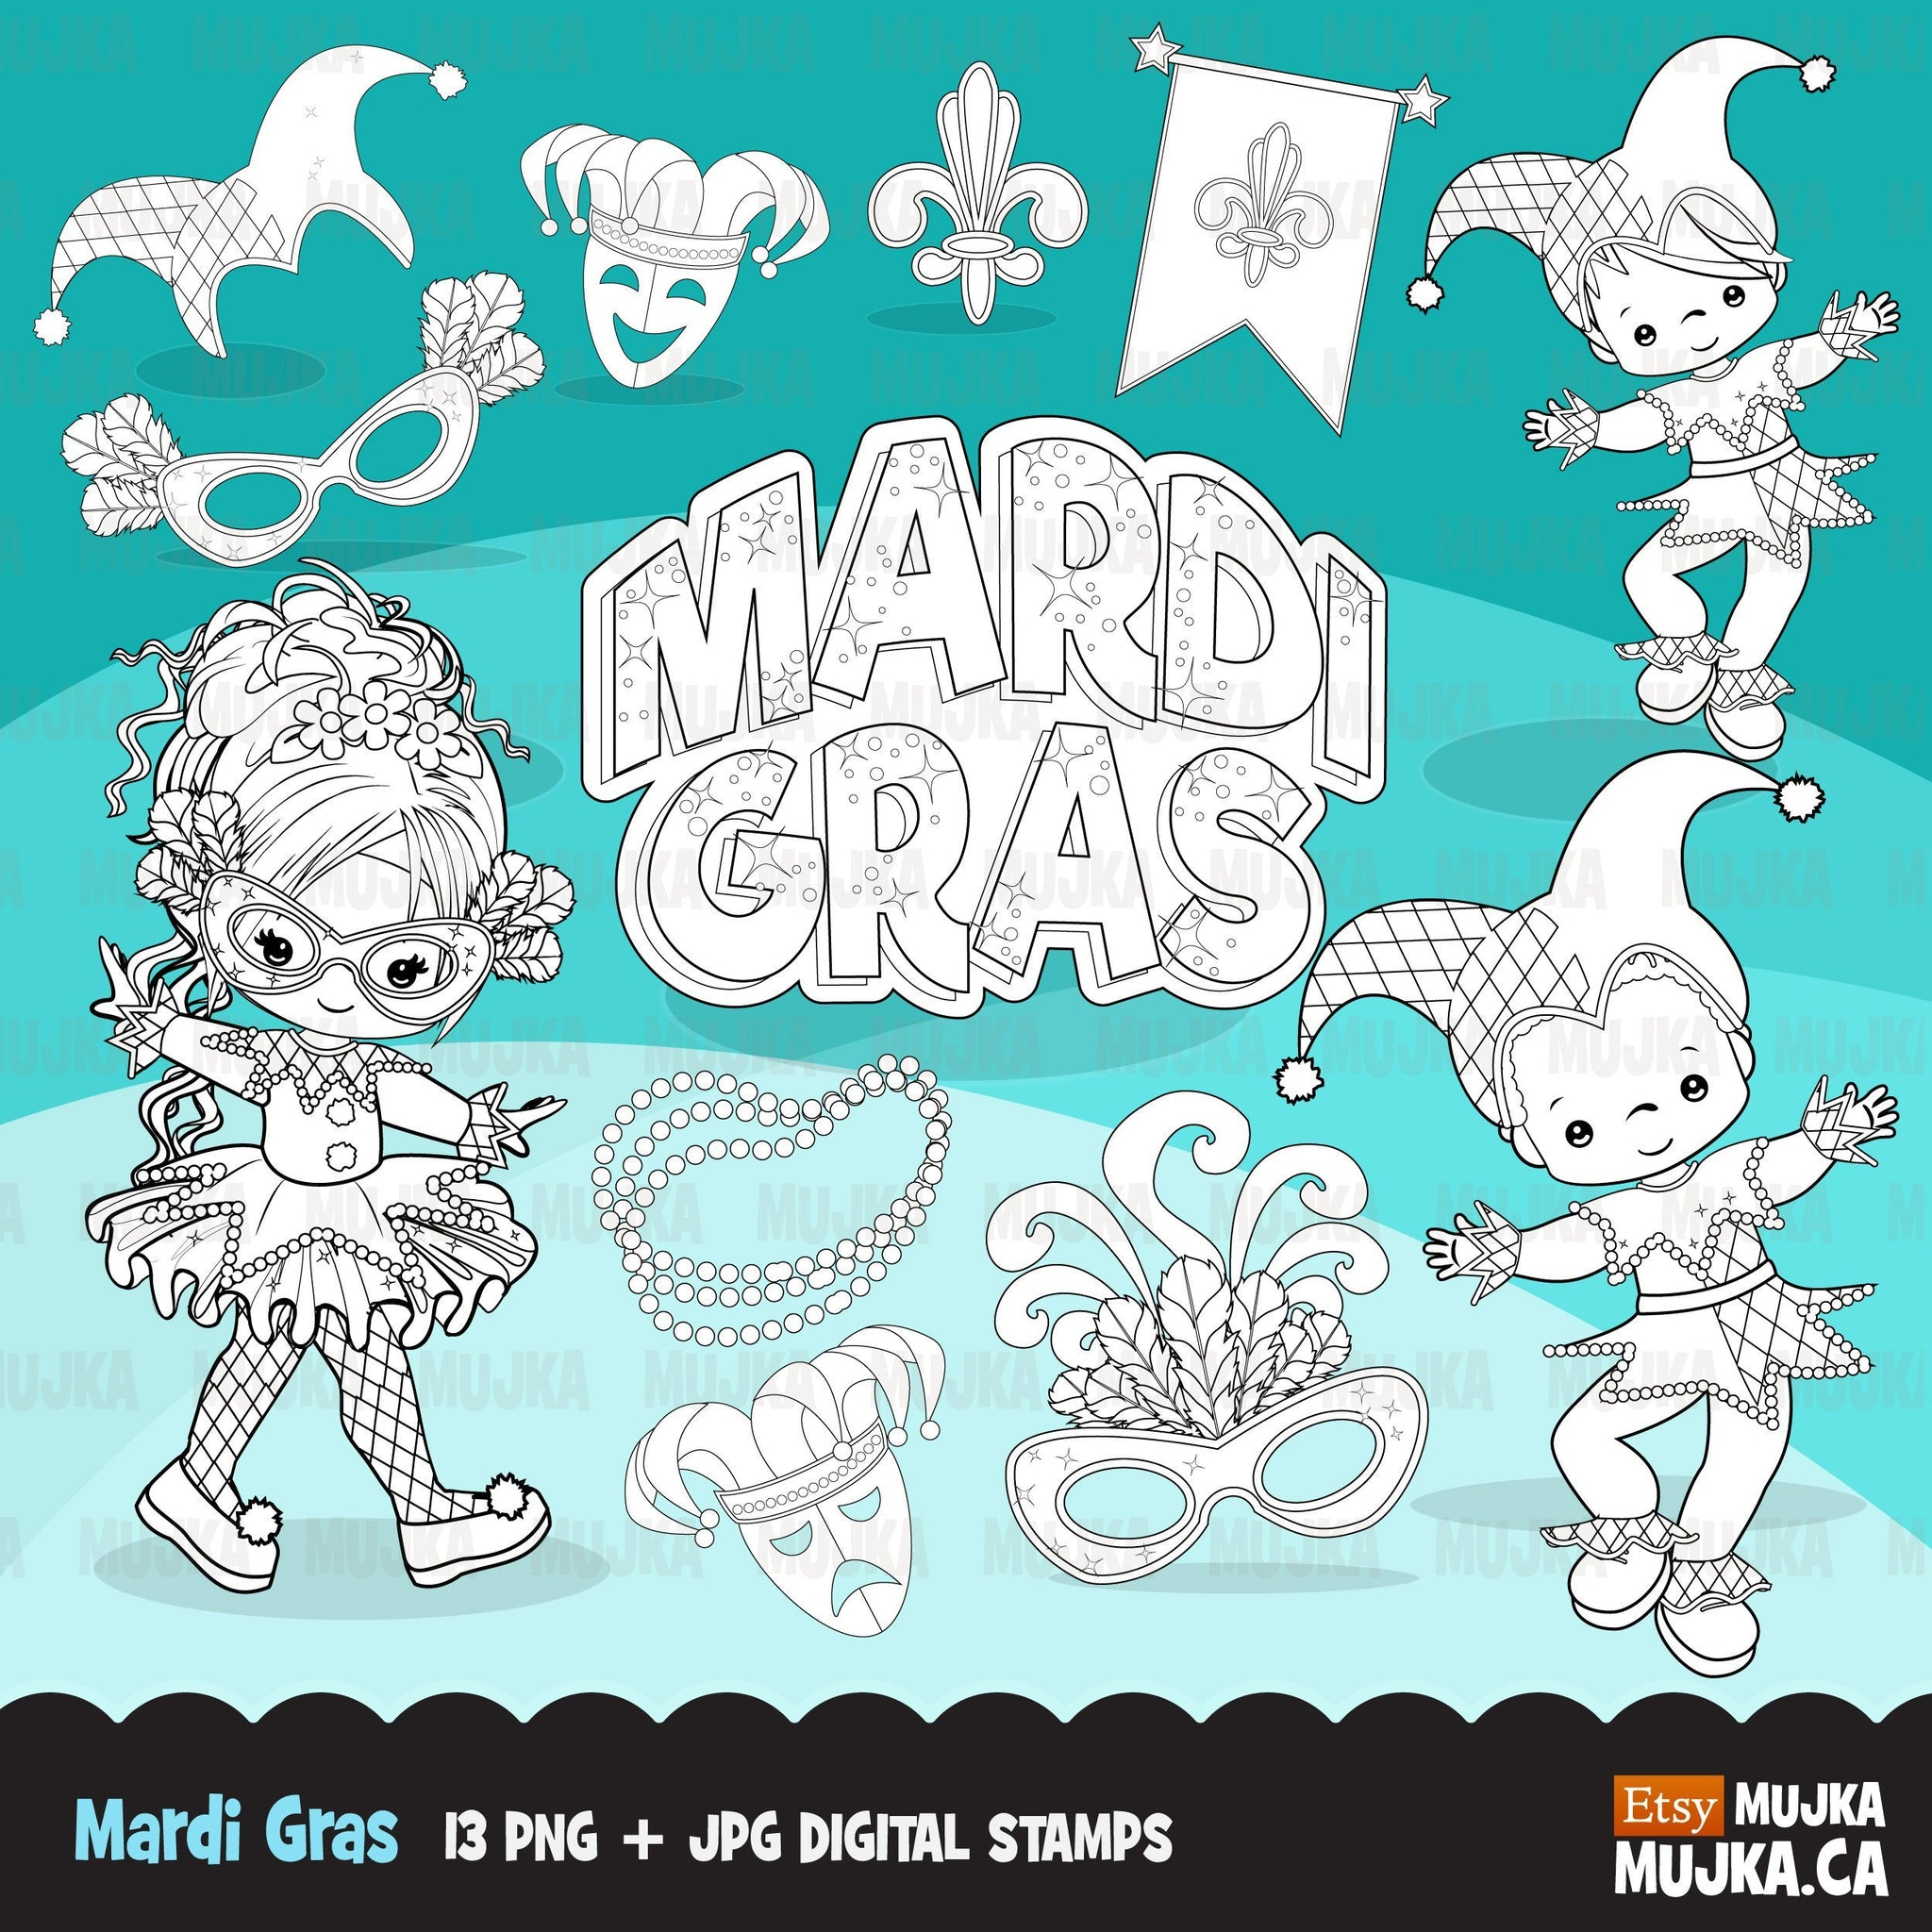 Mardi gras digital stamps, girl and boy